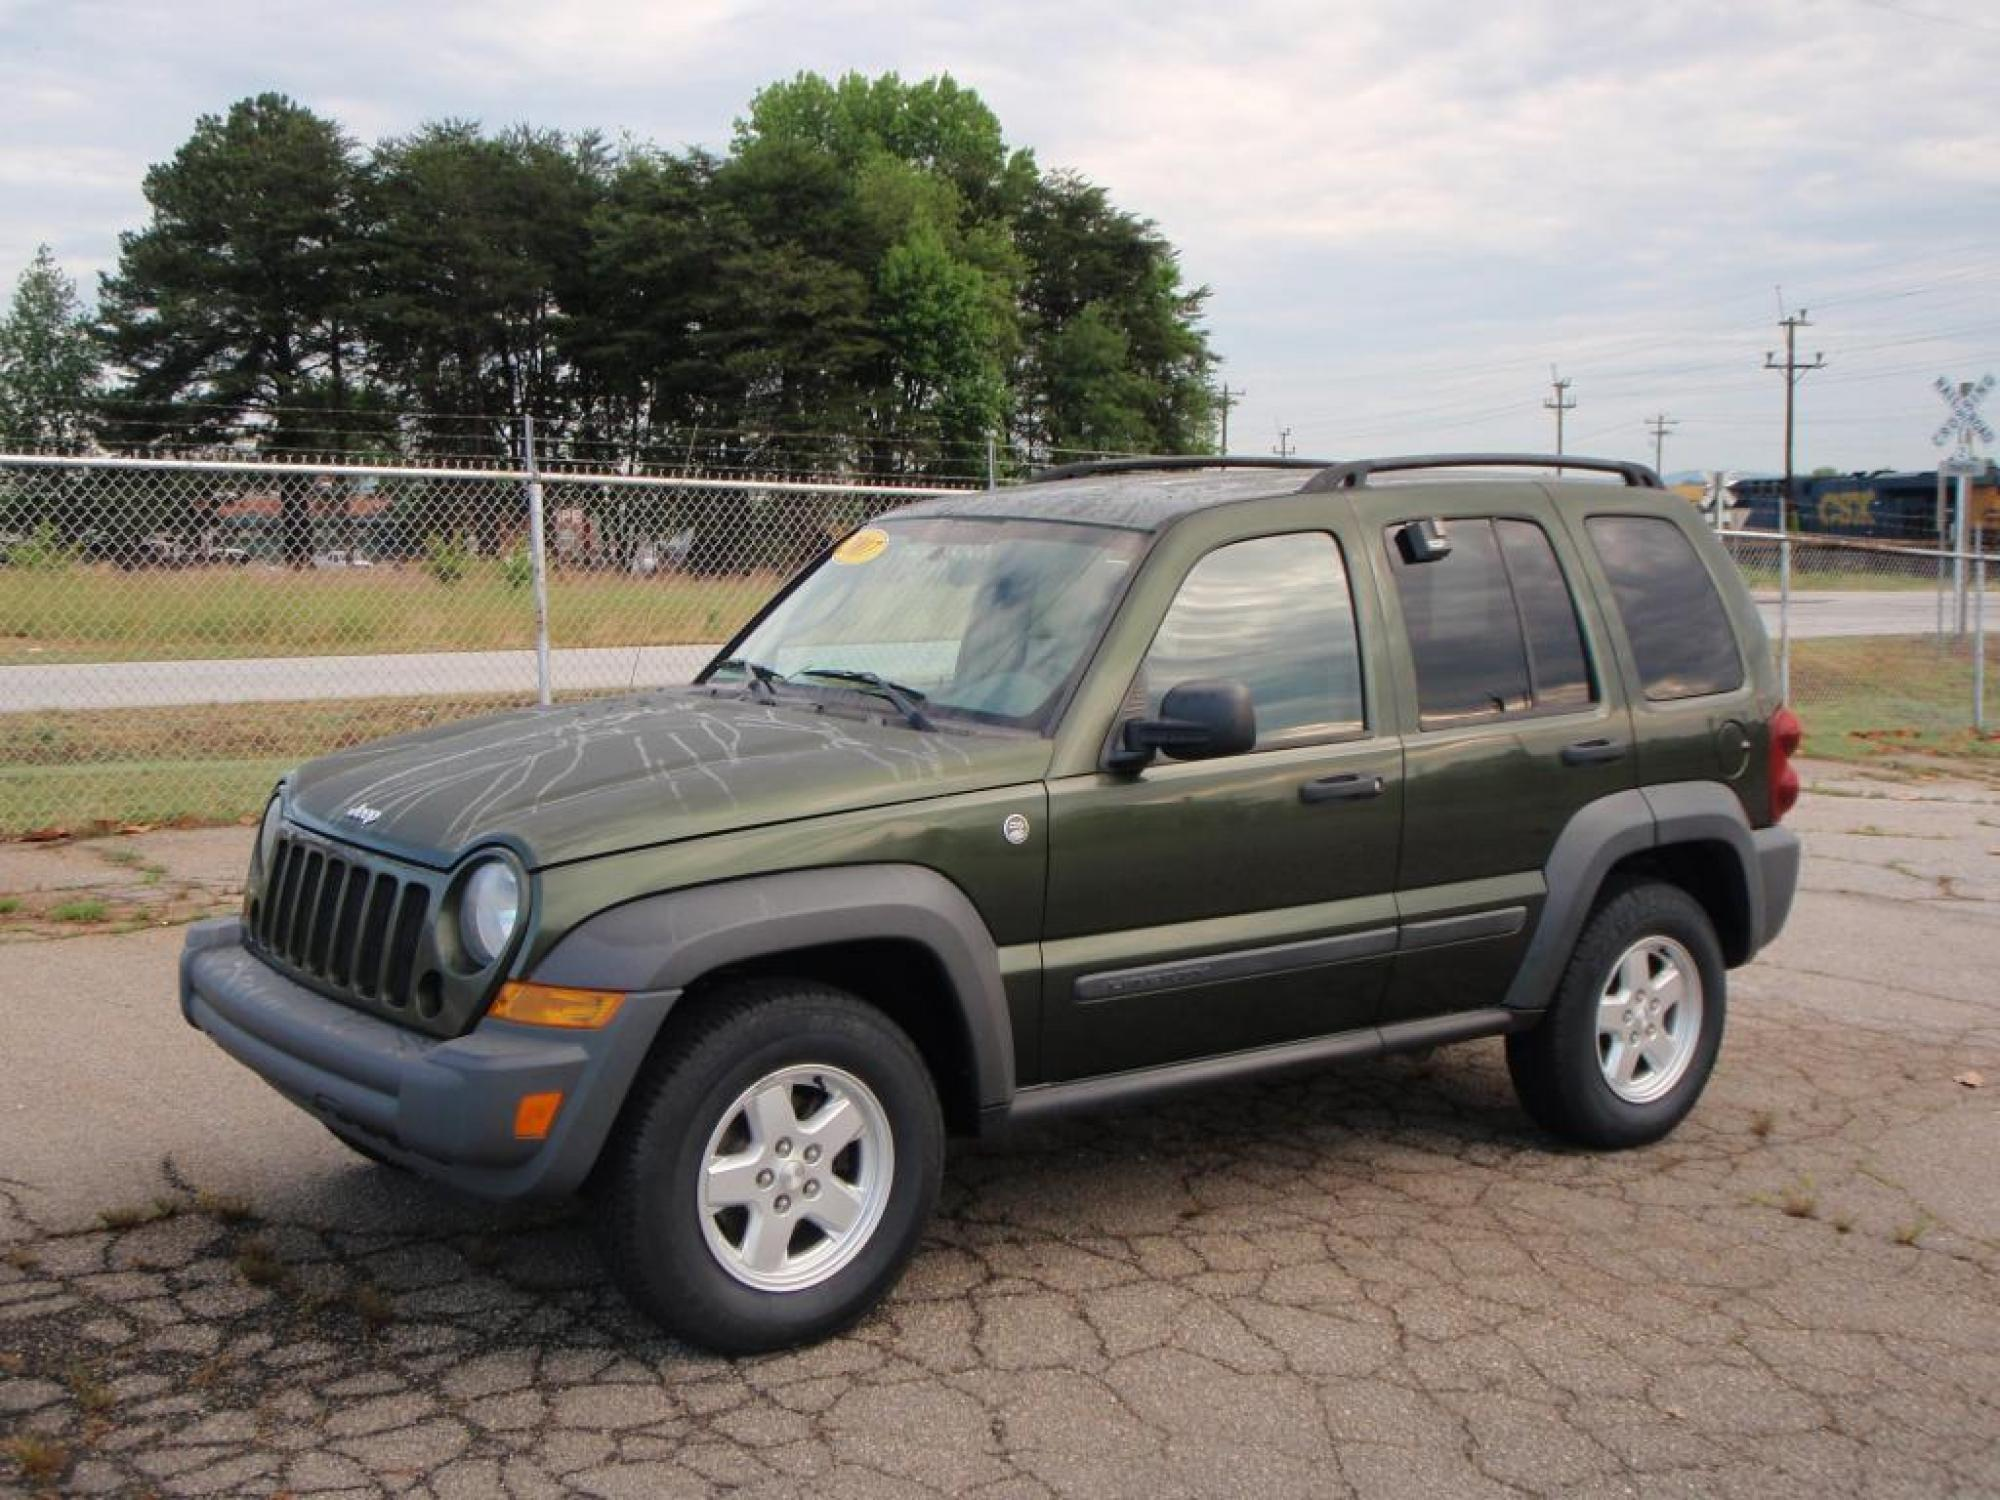 2007 Jeep Liberty Sport 4WD 4dr SUV Green Gray 37L DOHC V6 engine355 axle ratio136-amp alter